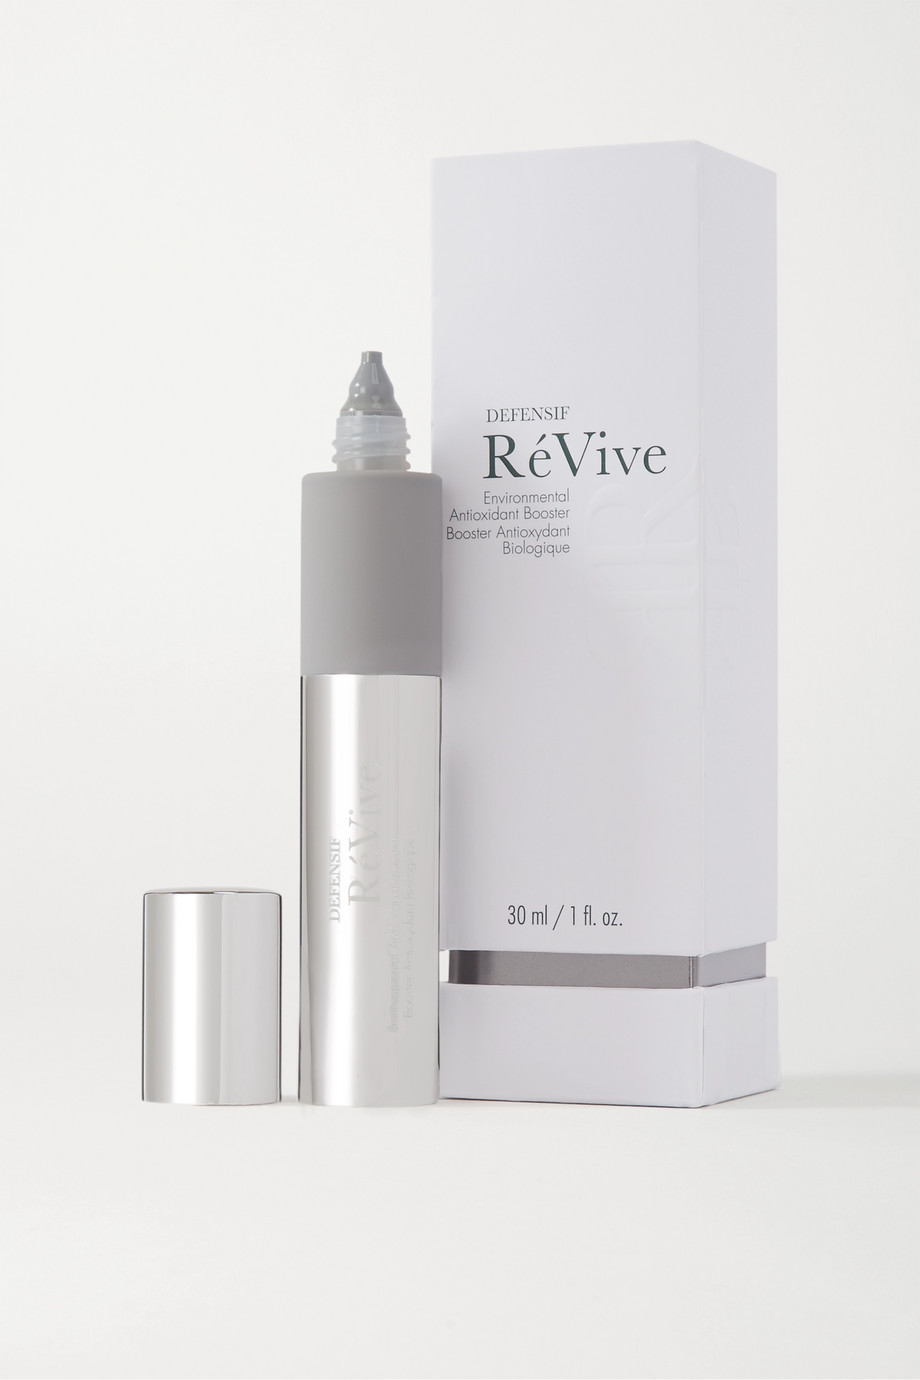 RÉVIVE Defensif Environmental Antioxidant Booster, 30ml